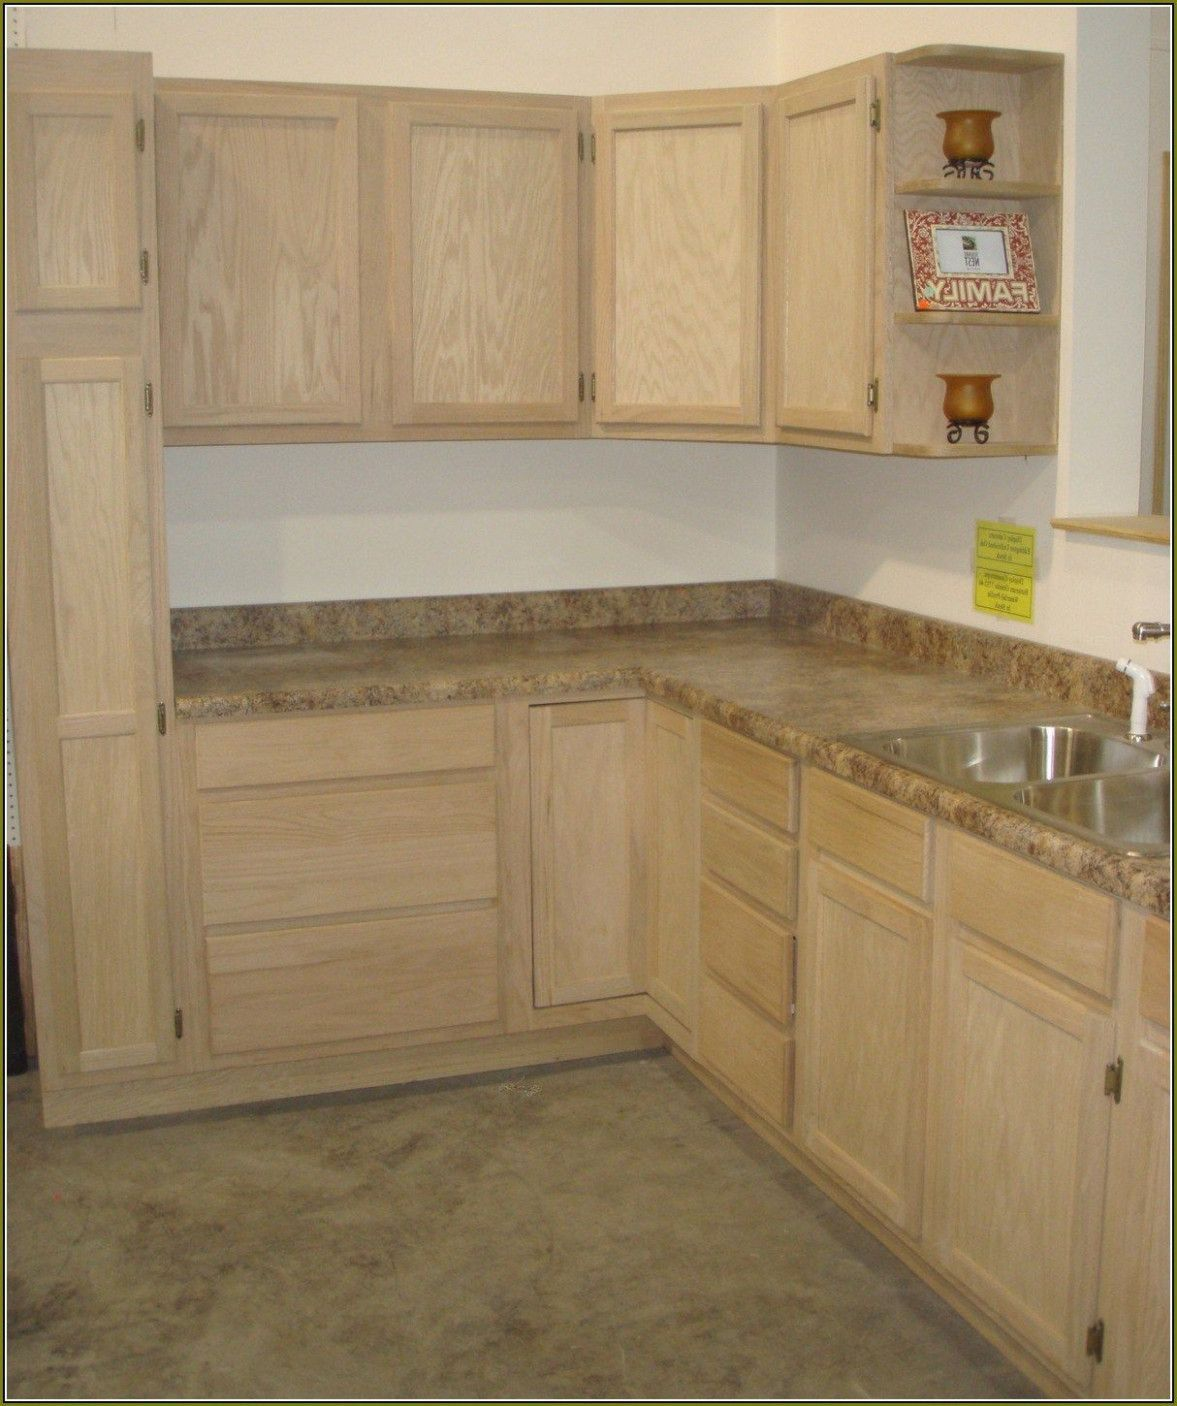 20 New Wood Cabinets Home Depot 20 New Wood Cabinets Home Depot Ceiling Admir In 2020 Kitchen Cabinets Home Depot Home Depot Kitchen Unfinished Kitchen Cabinets